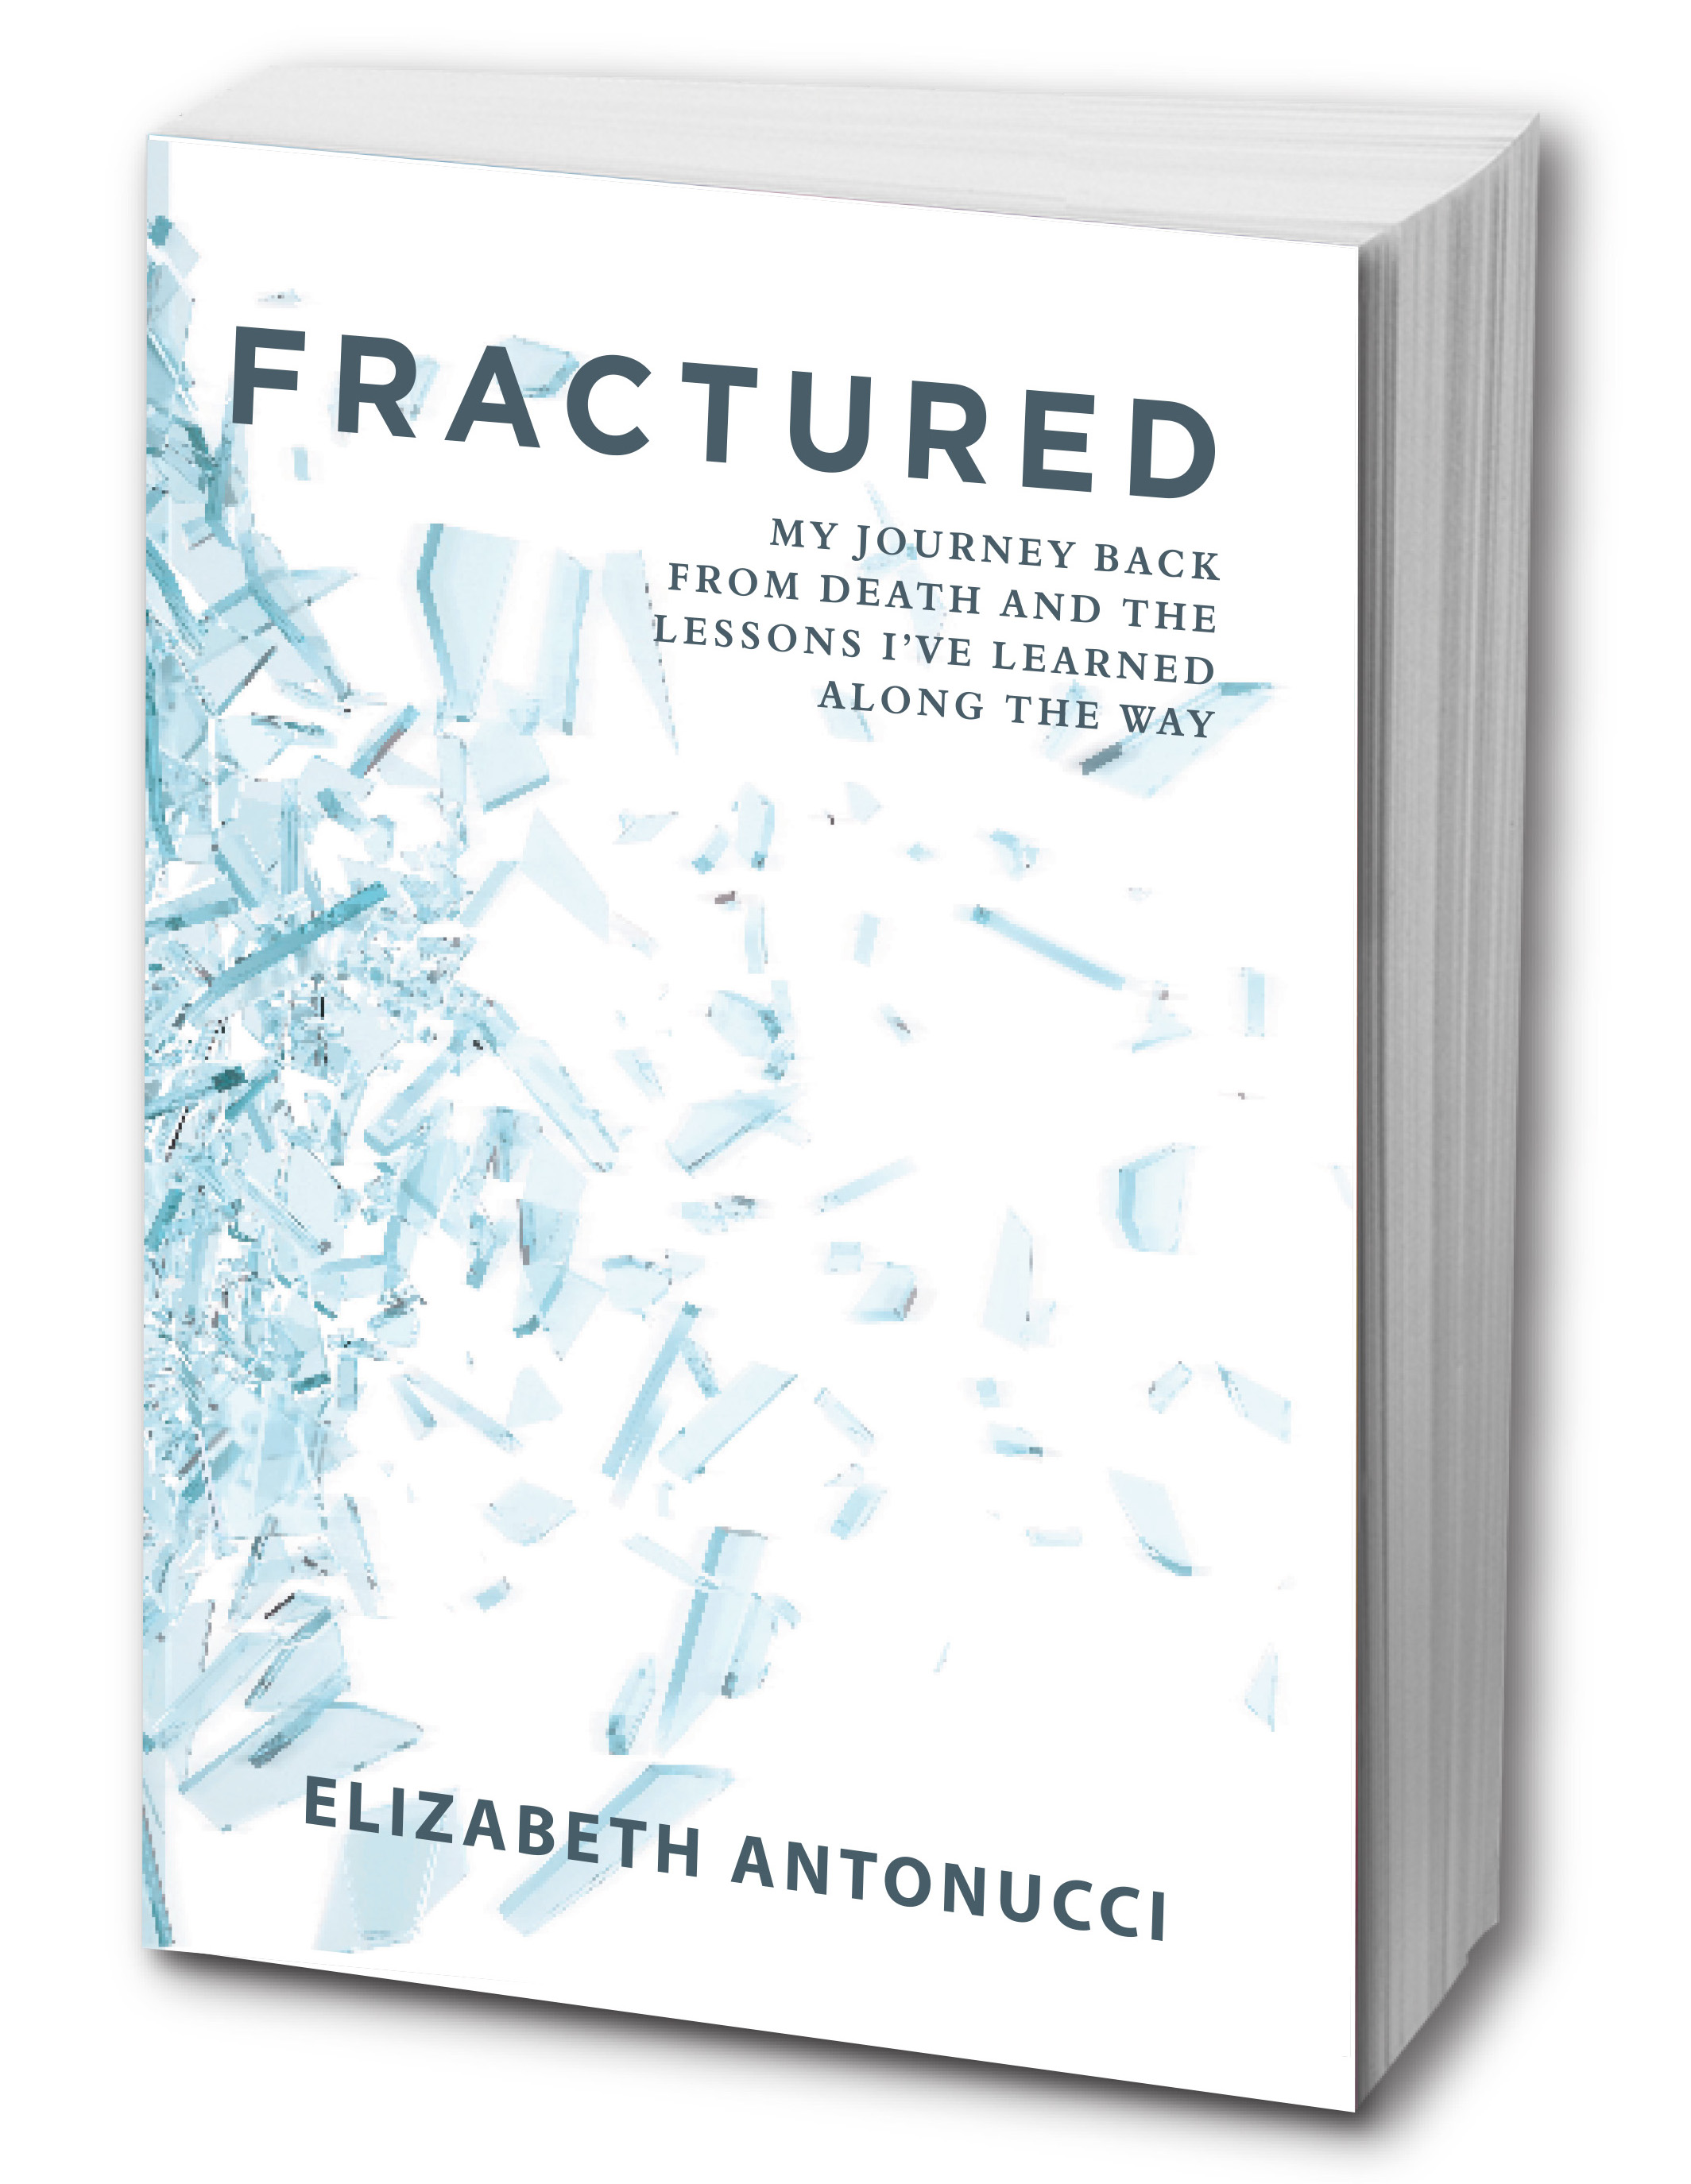 "Now Available! - ""Fractured is the true story of what it takes to heal—deeply—after a shattering accident. It lays out in intimate detail the crucial work of binding our souls back together. And asking the deeper question "" Why me?"" with elegance—and without a trace of victimization."" Christiane Northrup, M.D., ob/gyn physician and author of the New York Times bestsellers:Goddesses Never Age: The Secret Prescription for Radiance, Vitality, and Wellbeing, Women's Bodies, Women's Wisdom, and The Wisdom of Menopause"